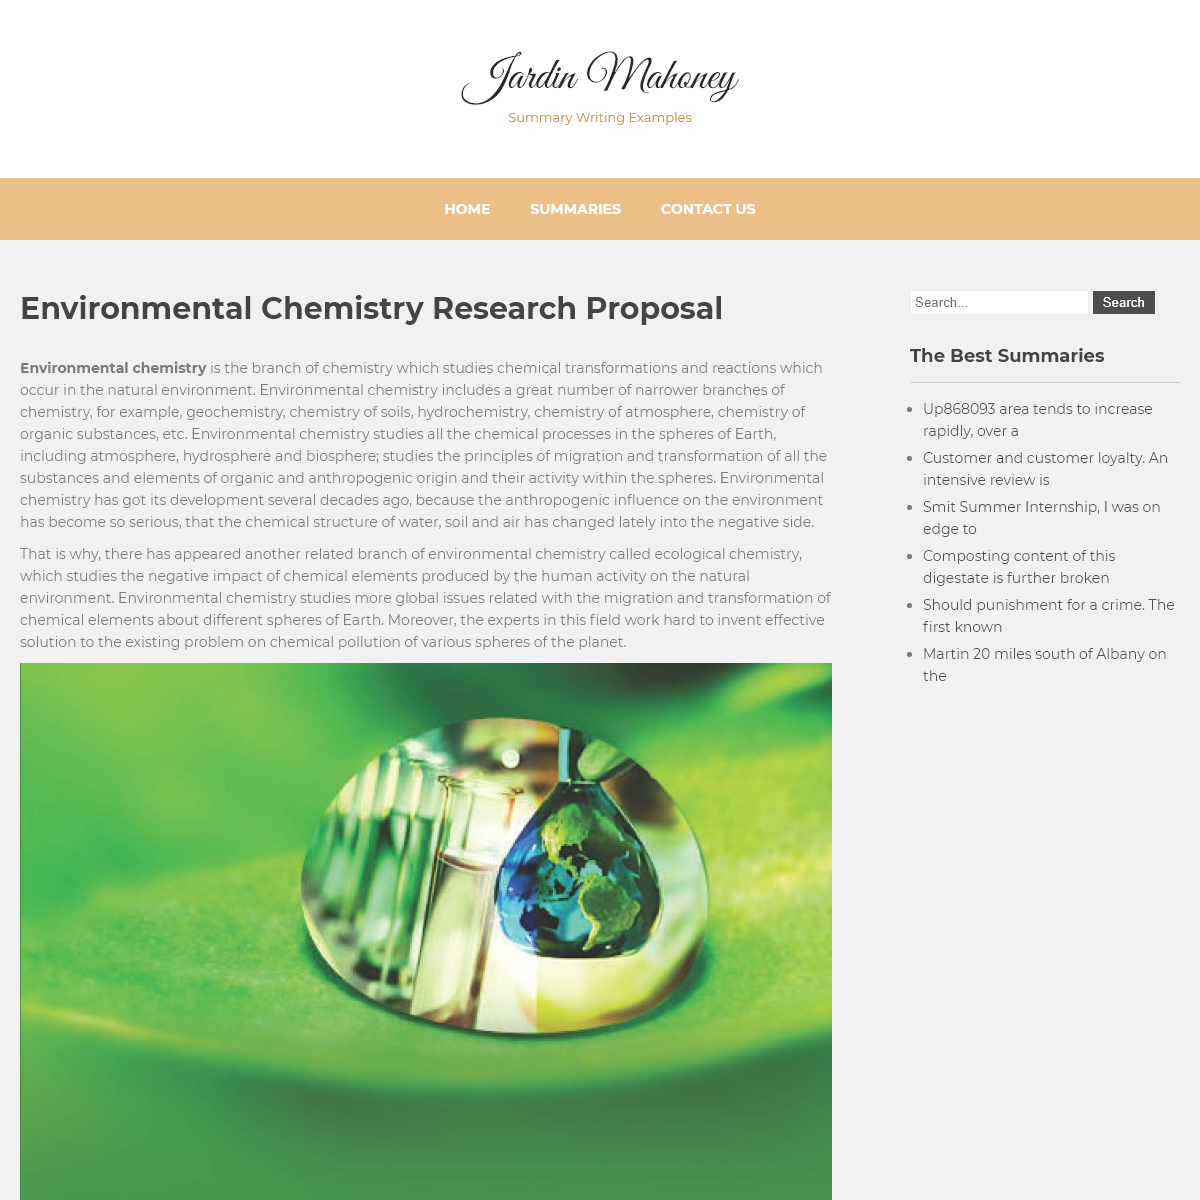 Environmental Chemistry Research Proposal - Jardin Mahoney